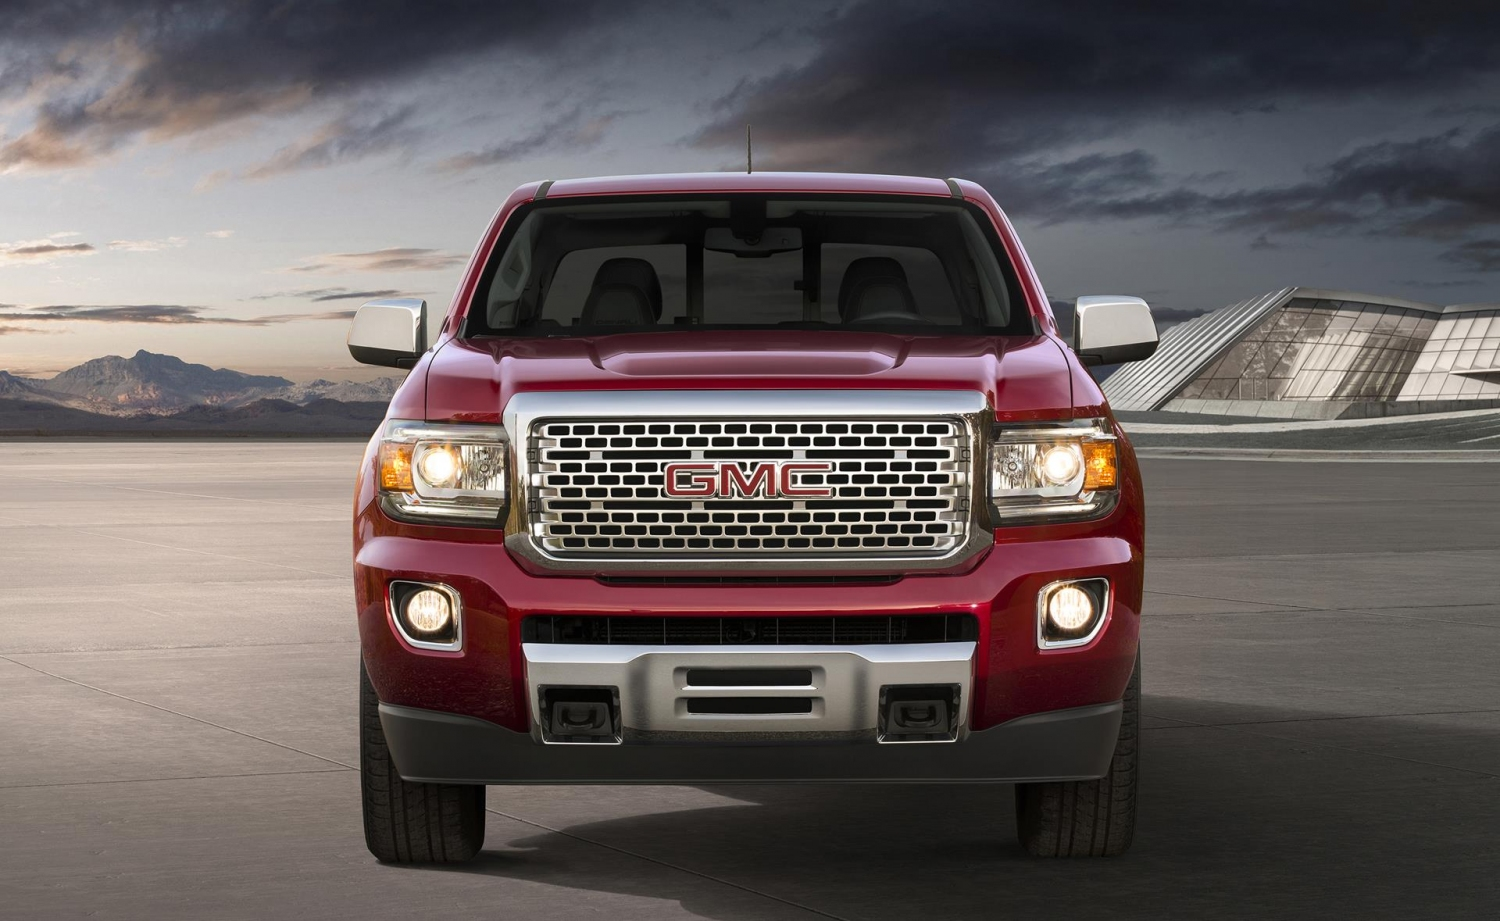 2017 GMC Canyon Denali Wallpapers [HD] - DriveSpark